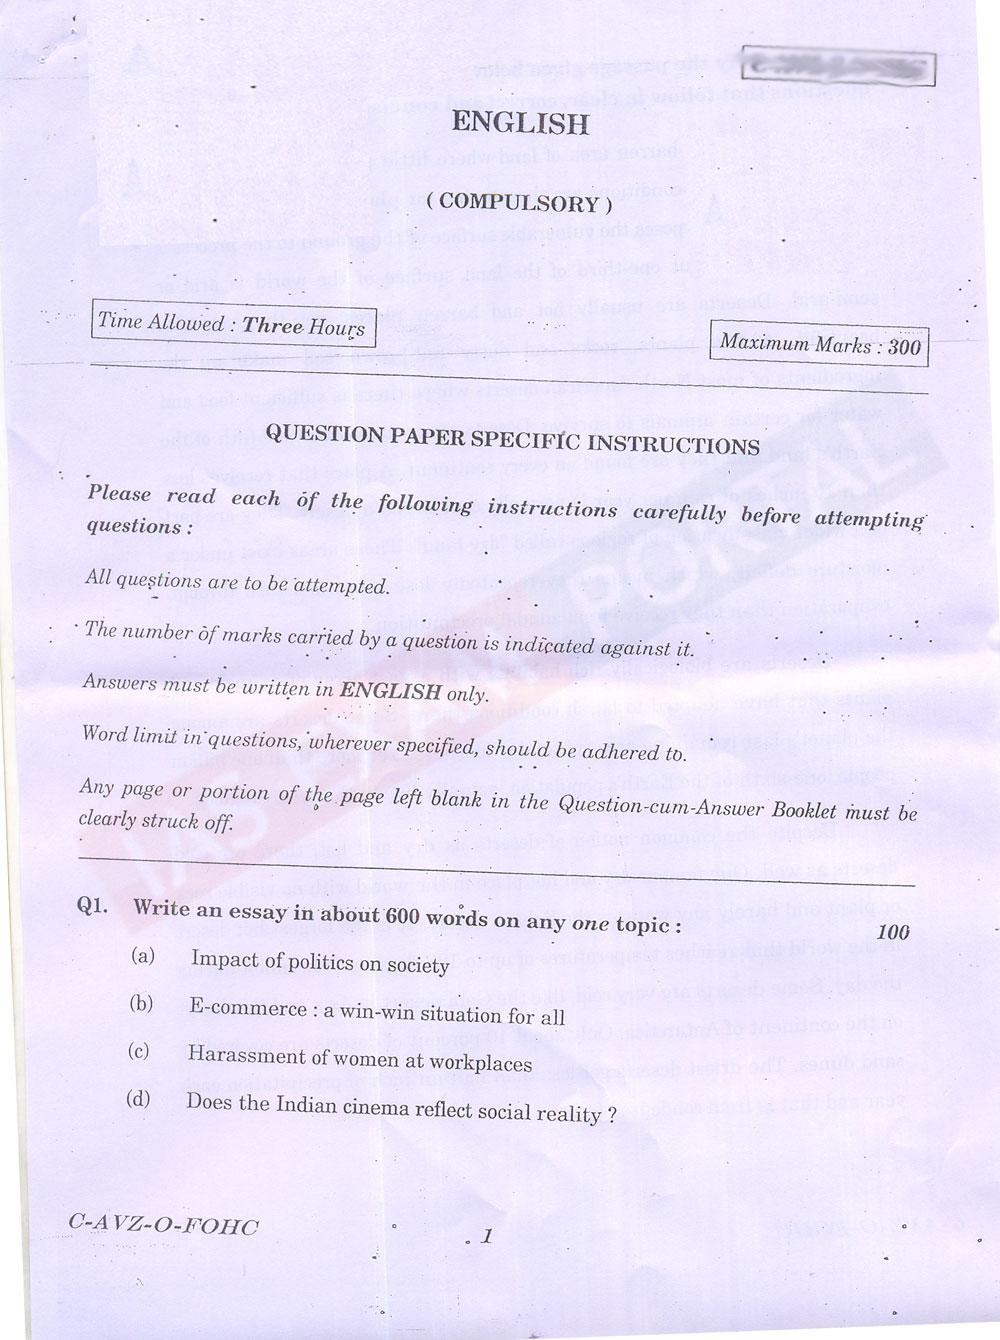 women and society essays draft essay on domestic violence upsc ias  upsc ias mains english compulsory question paper click here to full essay paper